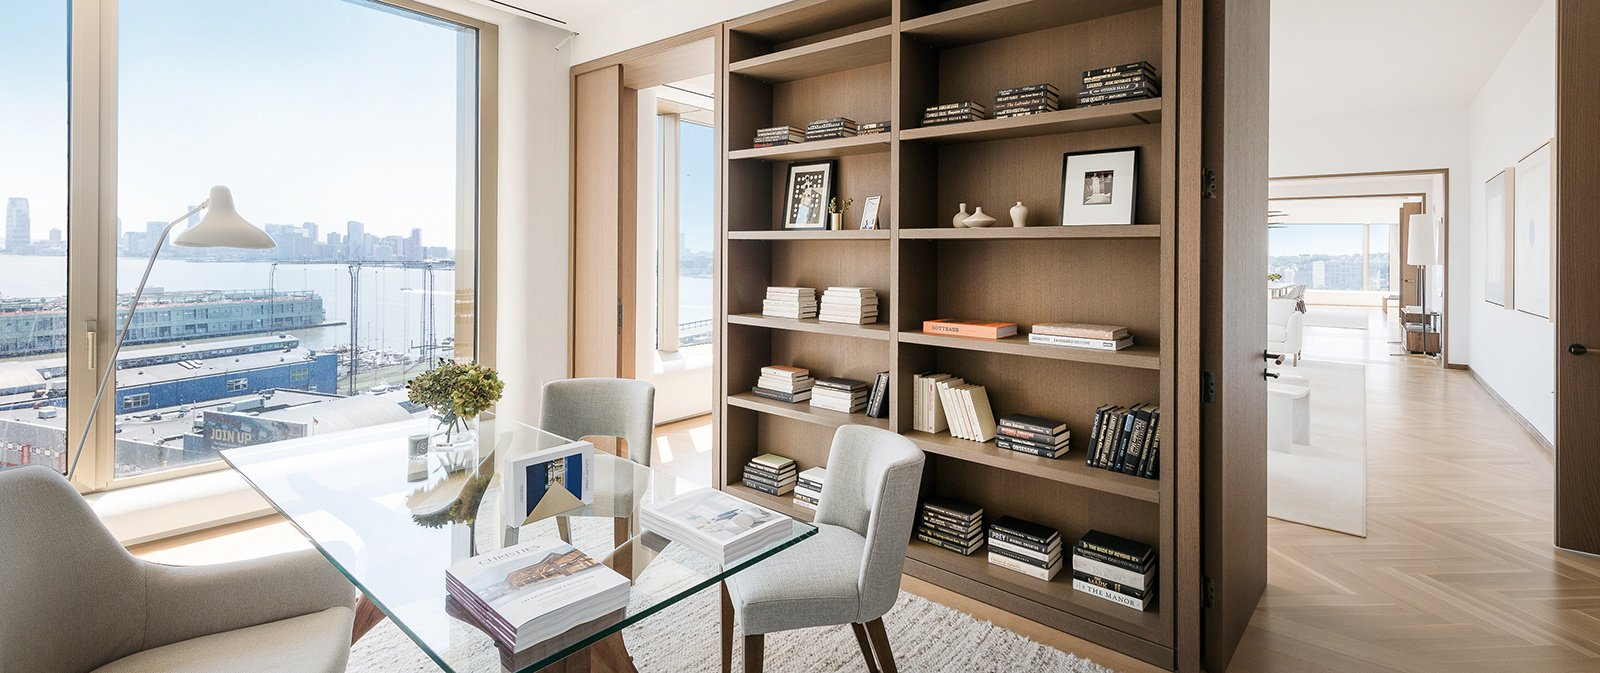 The High Life In West Chelsea, New York City